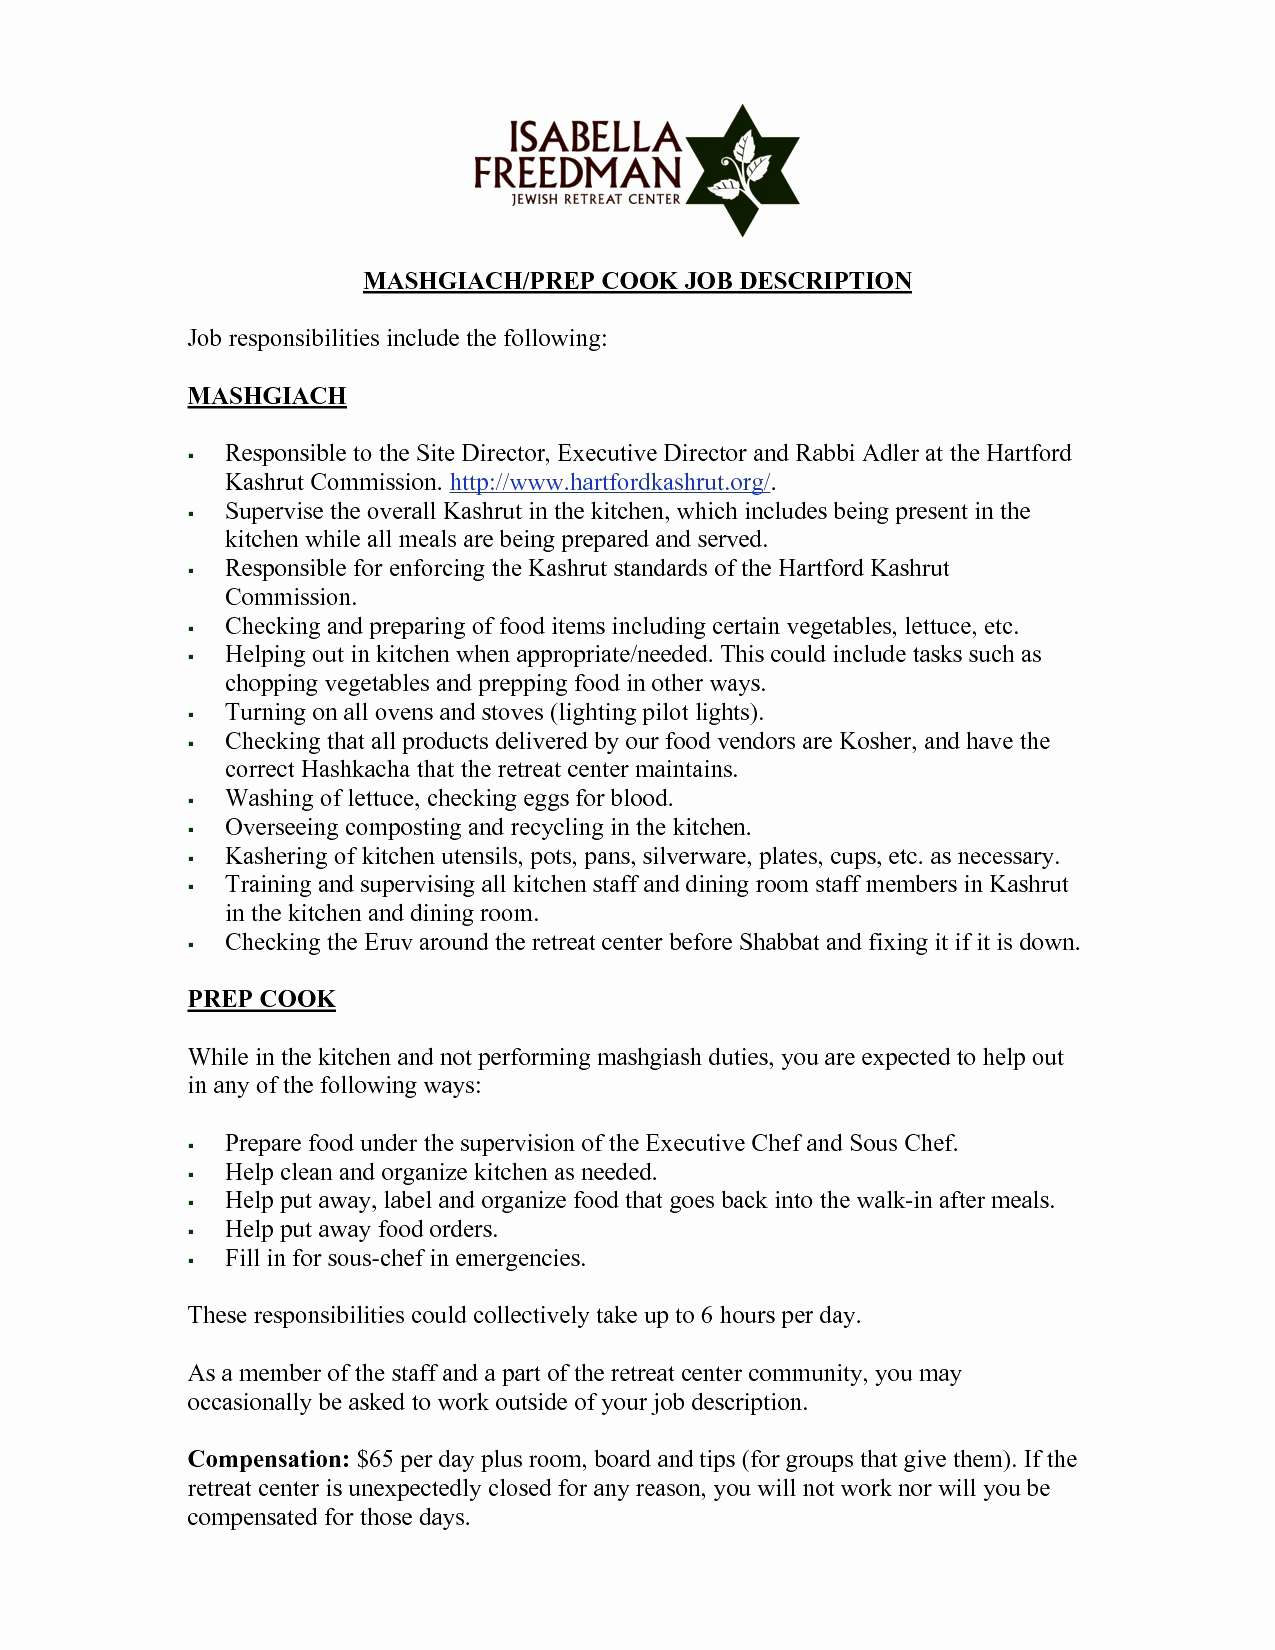 Free Modern Cover Letter Template - Free Modern Resume Templates Lovely Example Resume Cover Letter